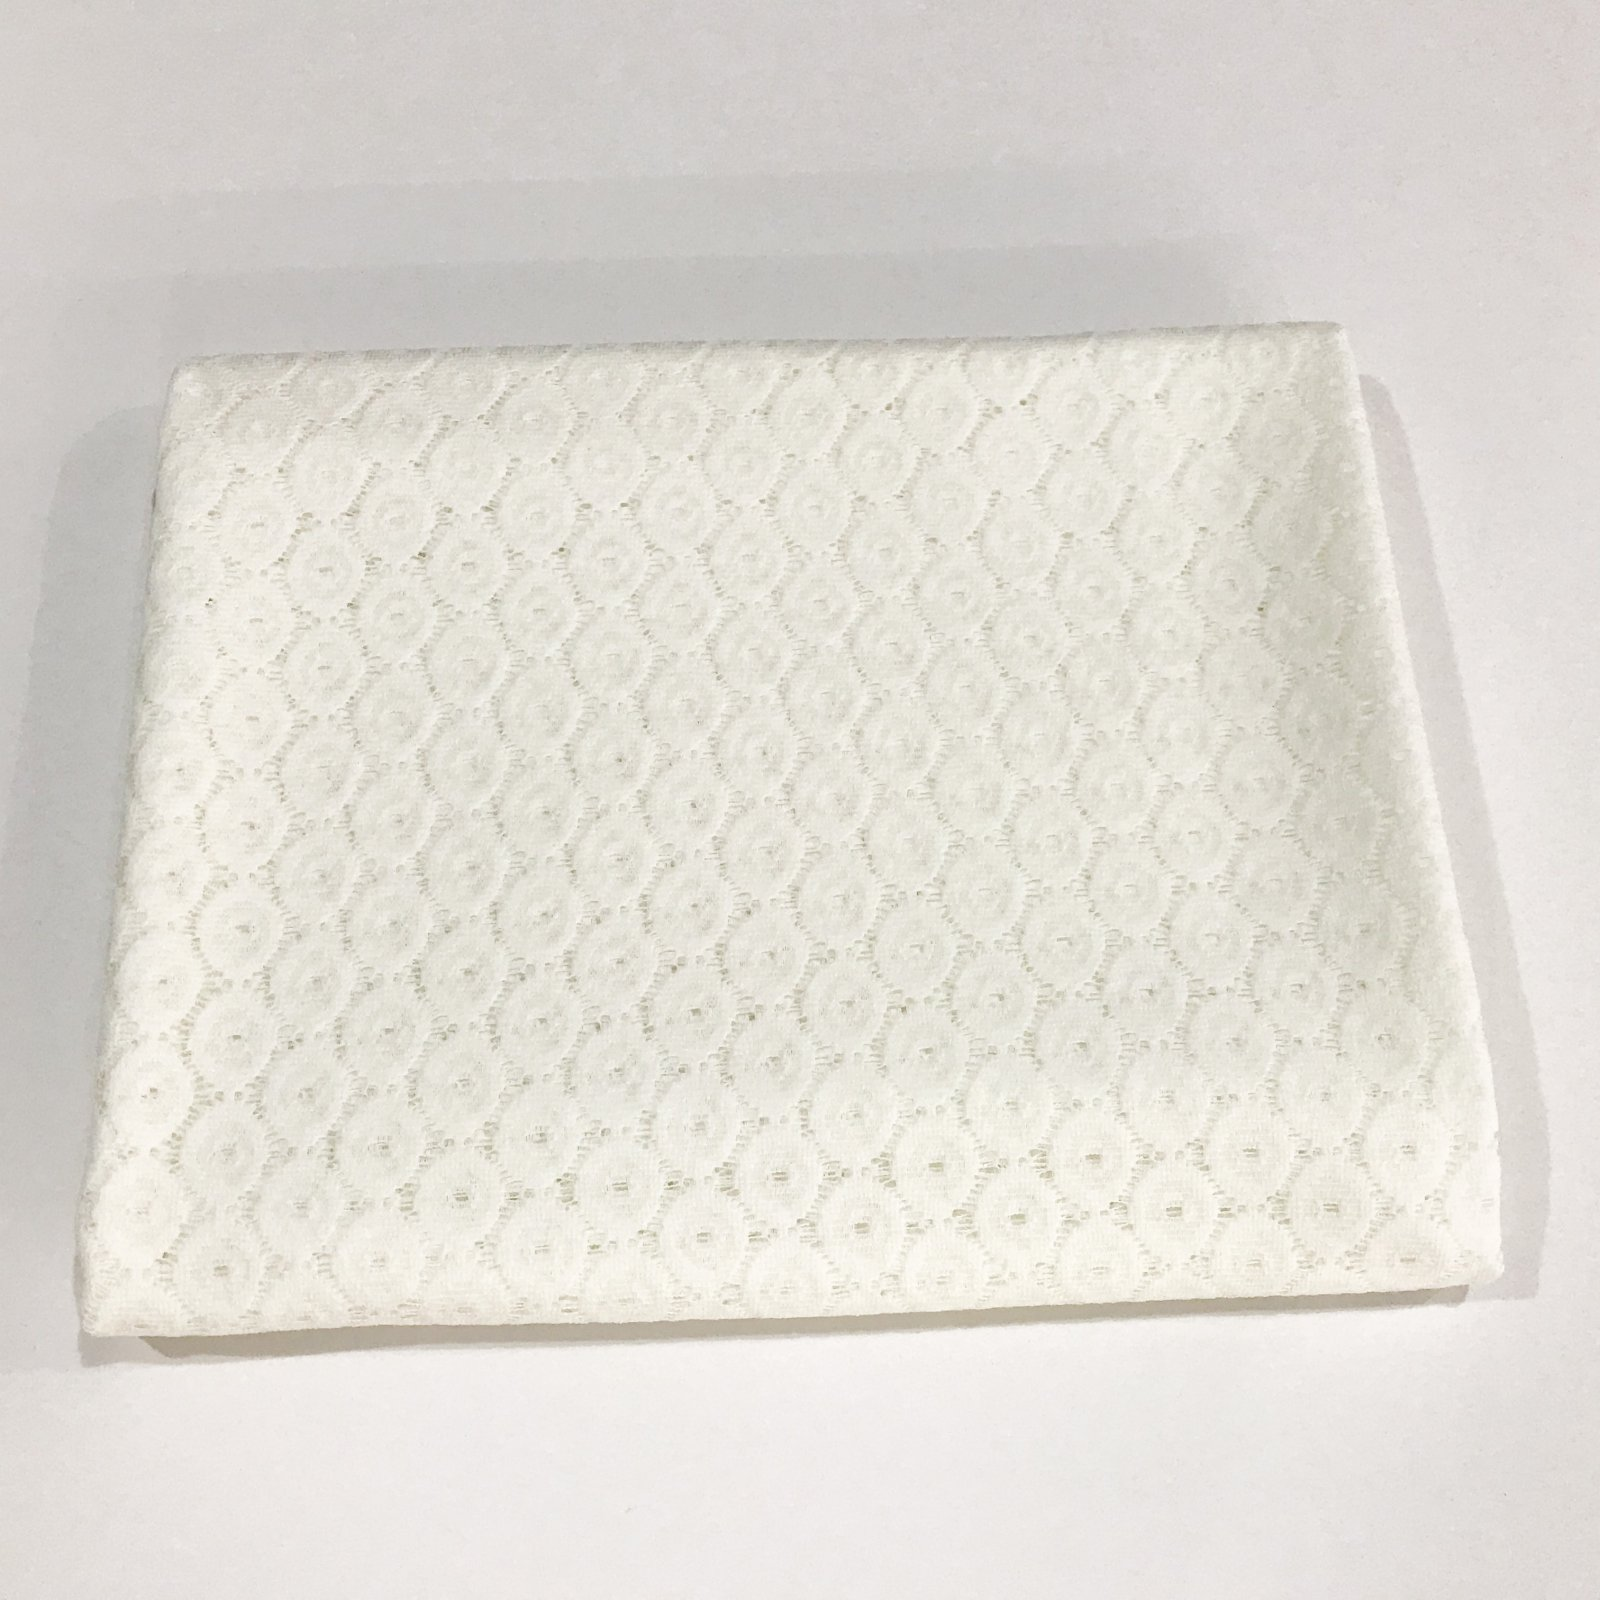 2 yards + 8 inches - Ivory Lace - Cotton/Poly